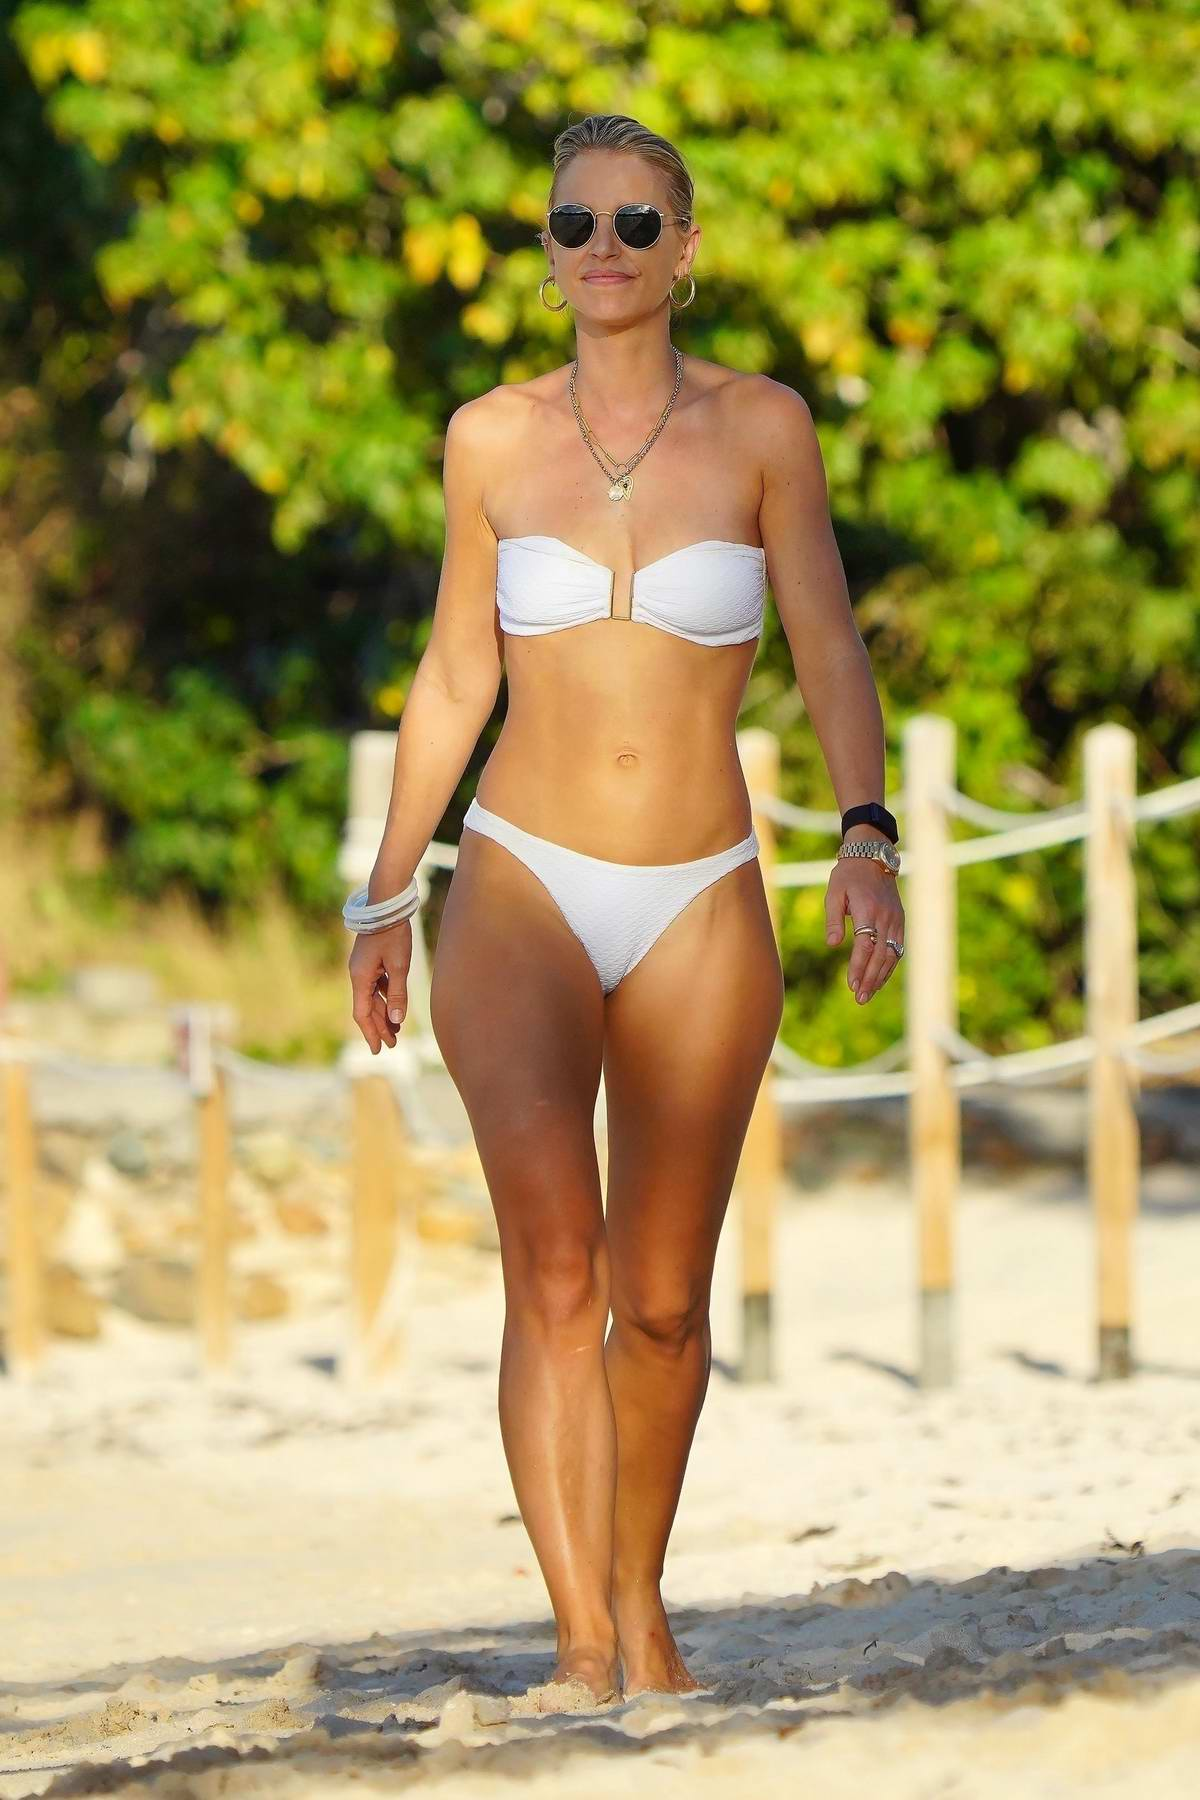 Vogue Williams looks great in a white bikini as she enjoys a day at the beach in St Barts, France